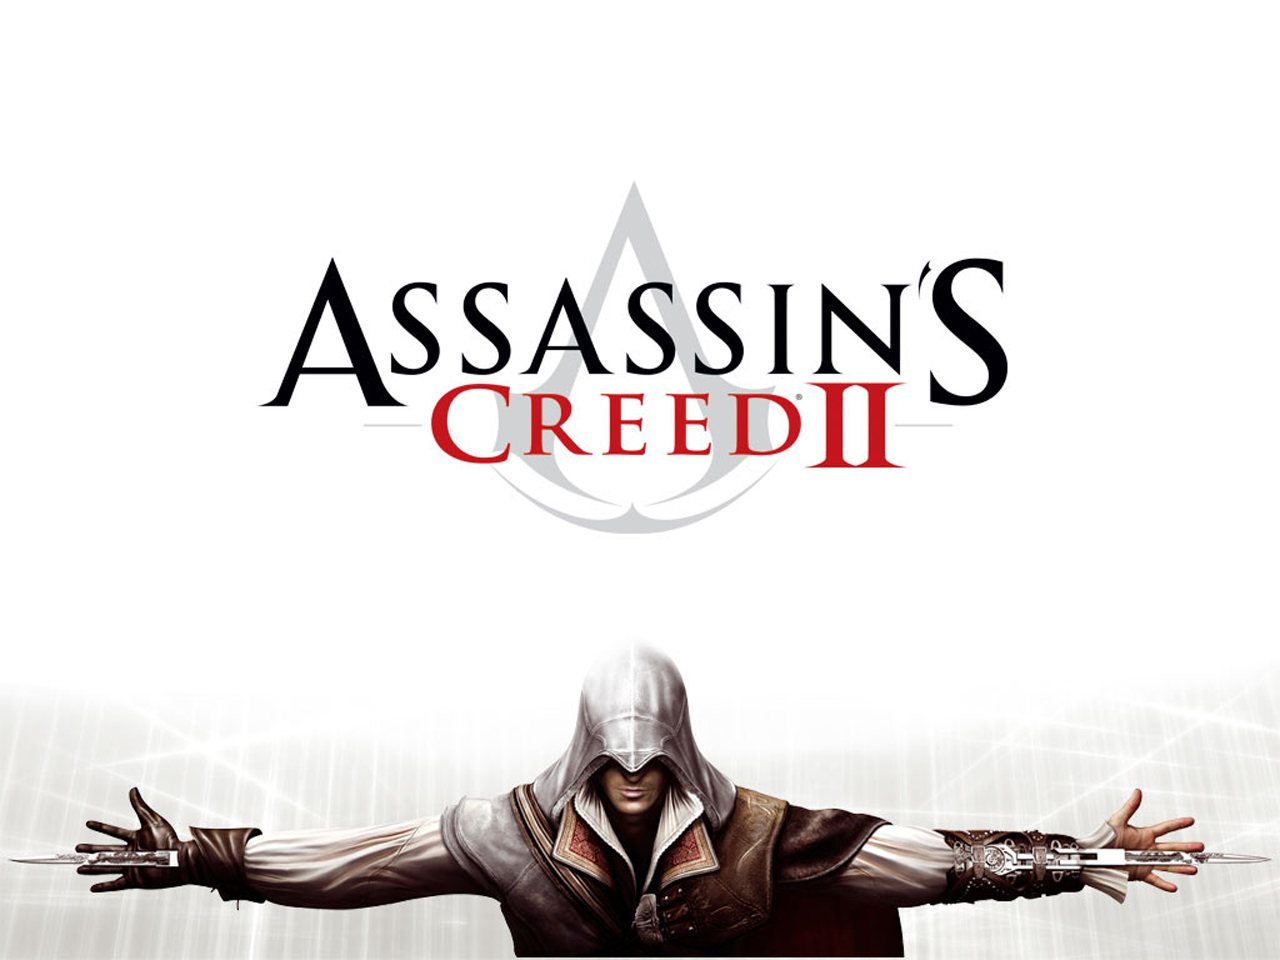 http://1.bp.blogspot.com/_tMlAXRaAHPo/S7Czk_rf5MI/AAAAAAAAAQc/4SI_k8sw2bo/s1600/assassins-creed-2-wallpaper-2.jpg